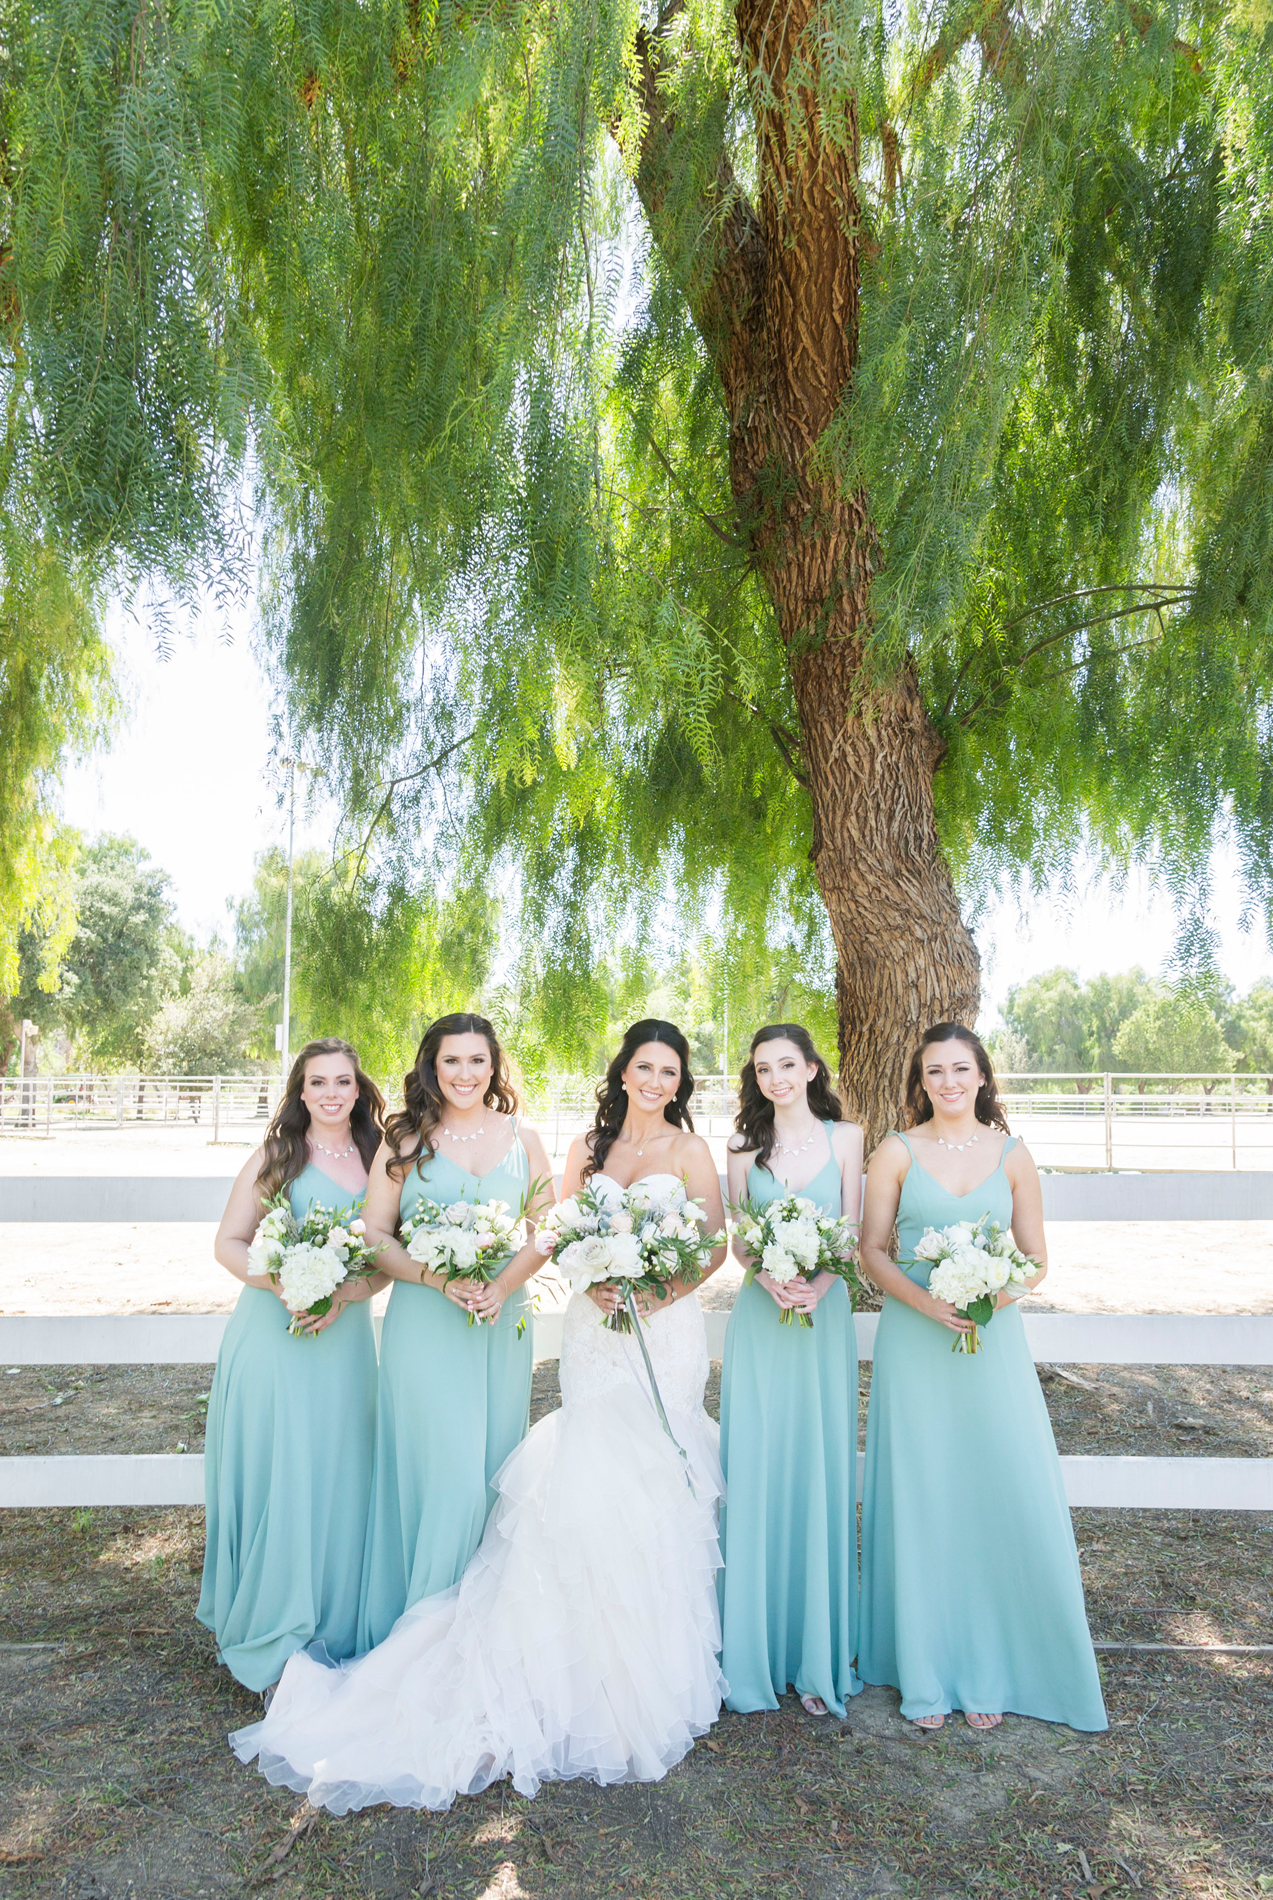 Mint Bridesmaid Dresses - A McCoy Equestrian Center Wedding - Peterson Design & Photography